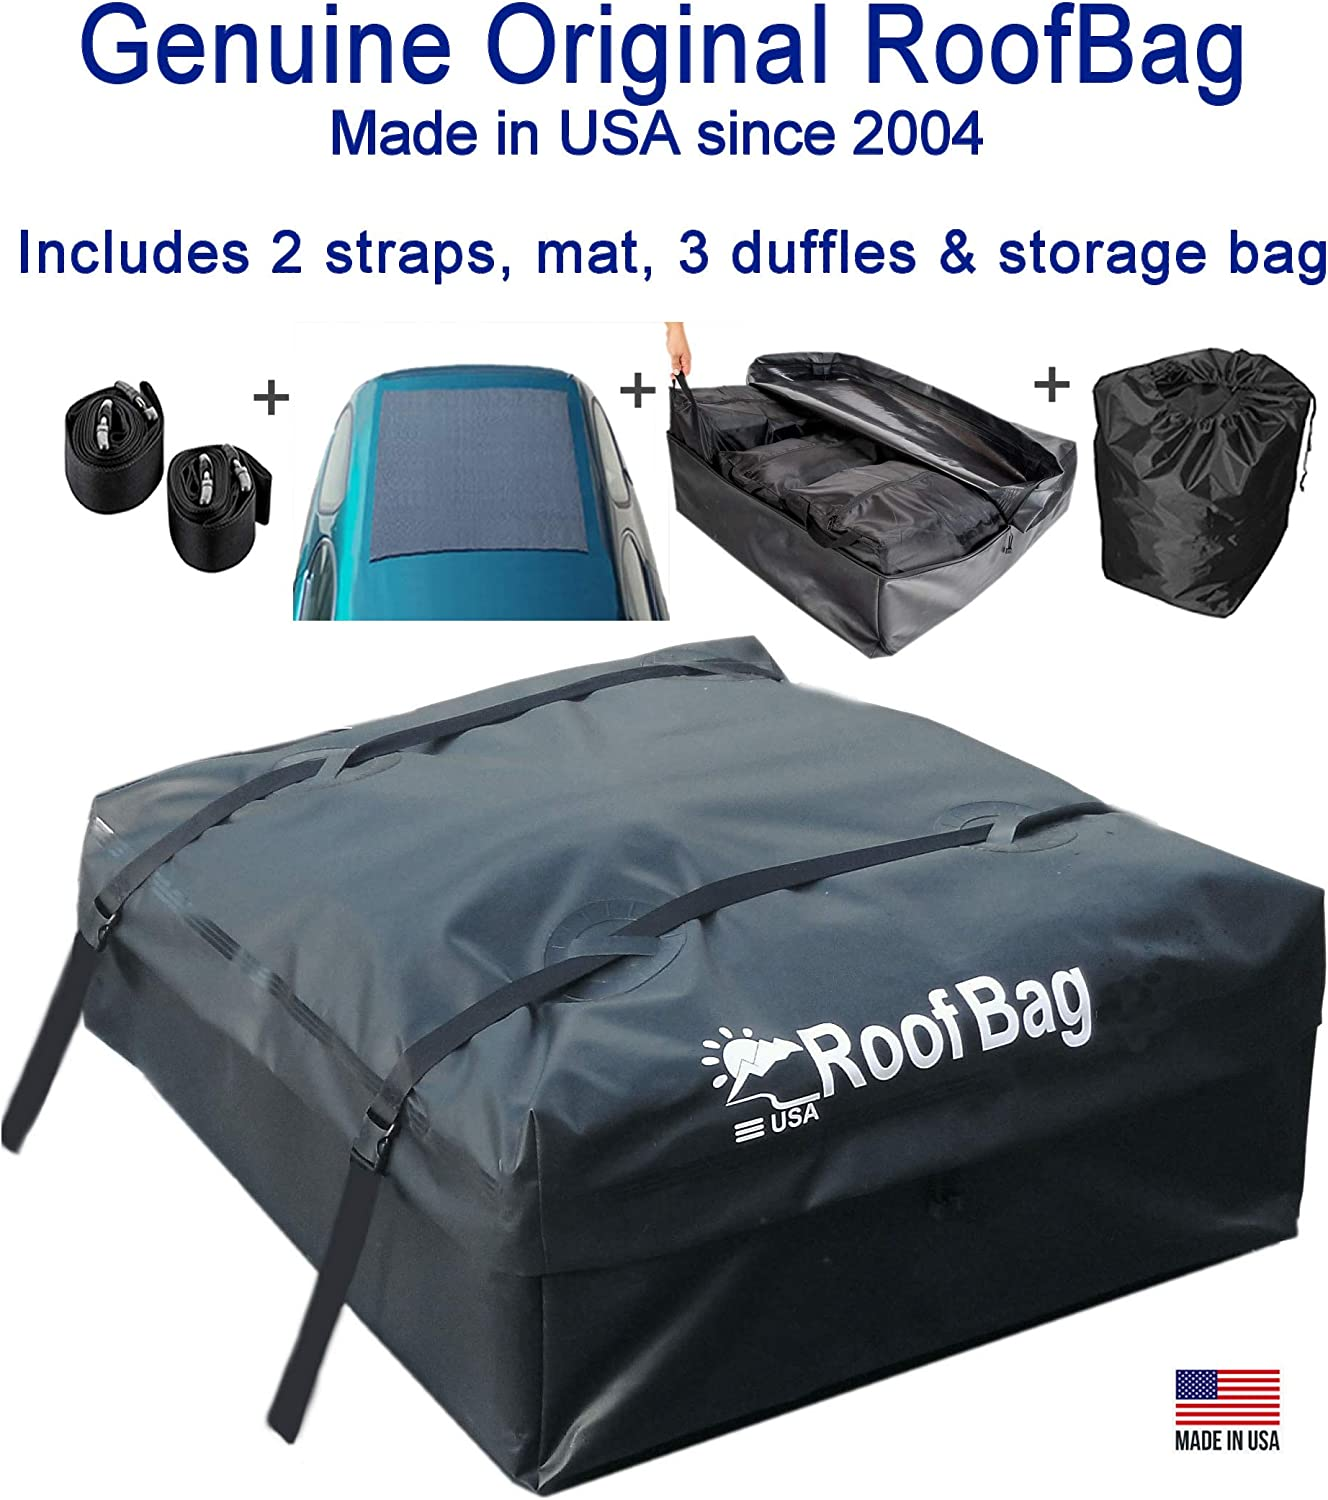 RoofBag Rooftop Cargo Carrier, Made in USA, 15 Cubic Feet. Waterproof Car Top Carrier for Cars with Racks or Without Racks Includes 2 Straps, 3 Liner Bags, Roof Protective Mat, Storage Bag : Automotive